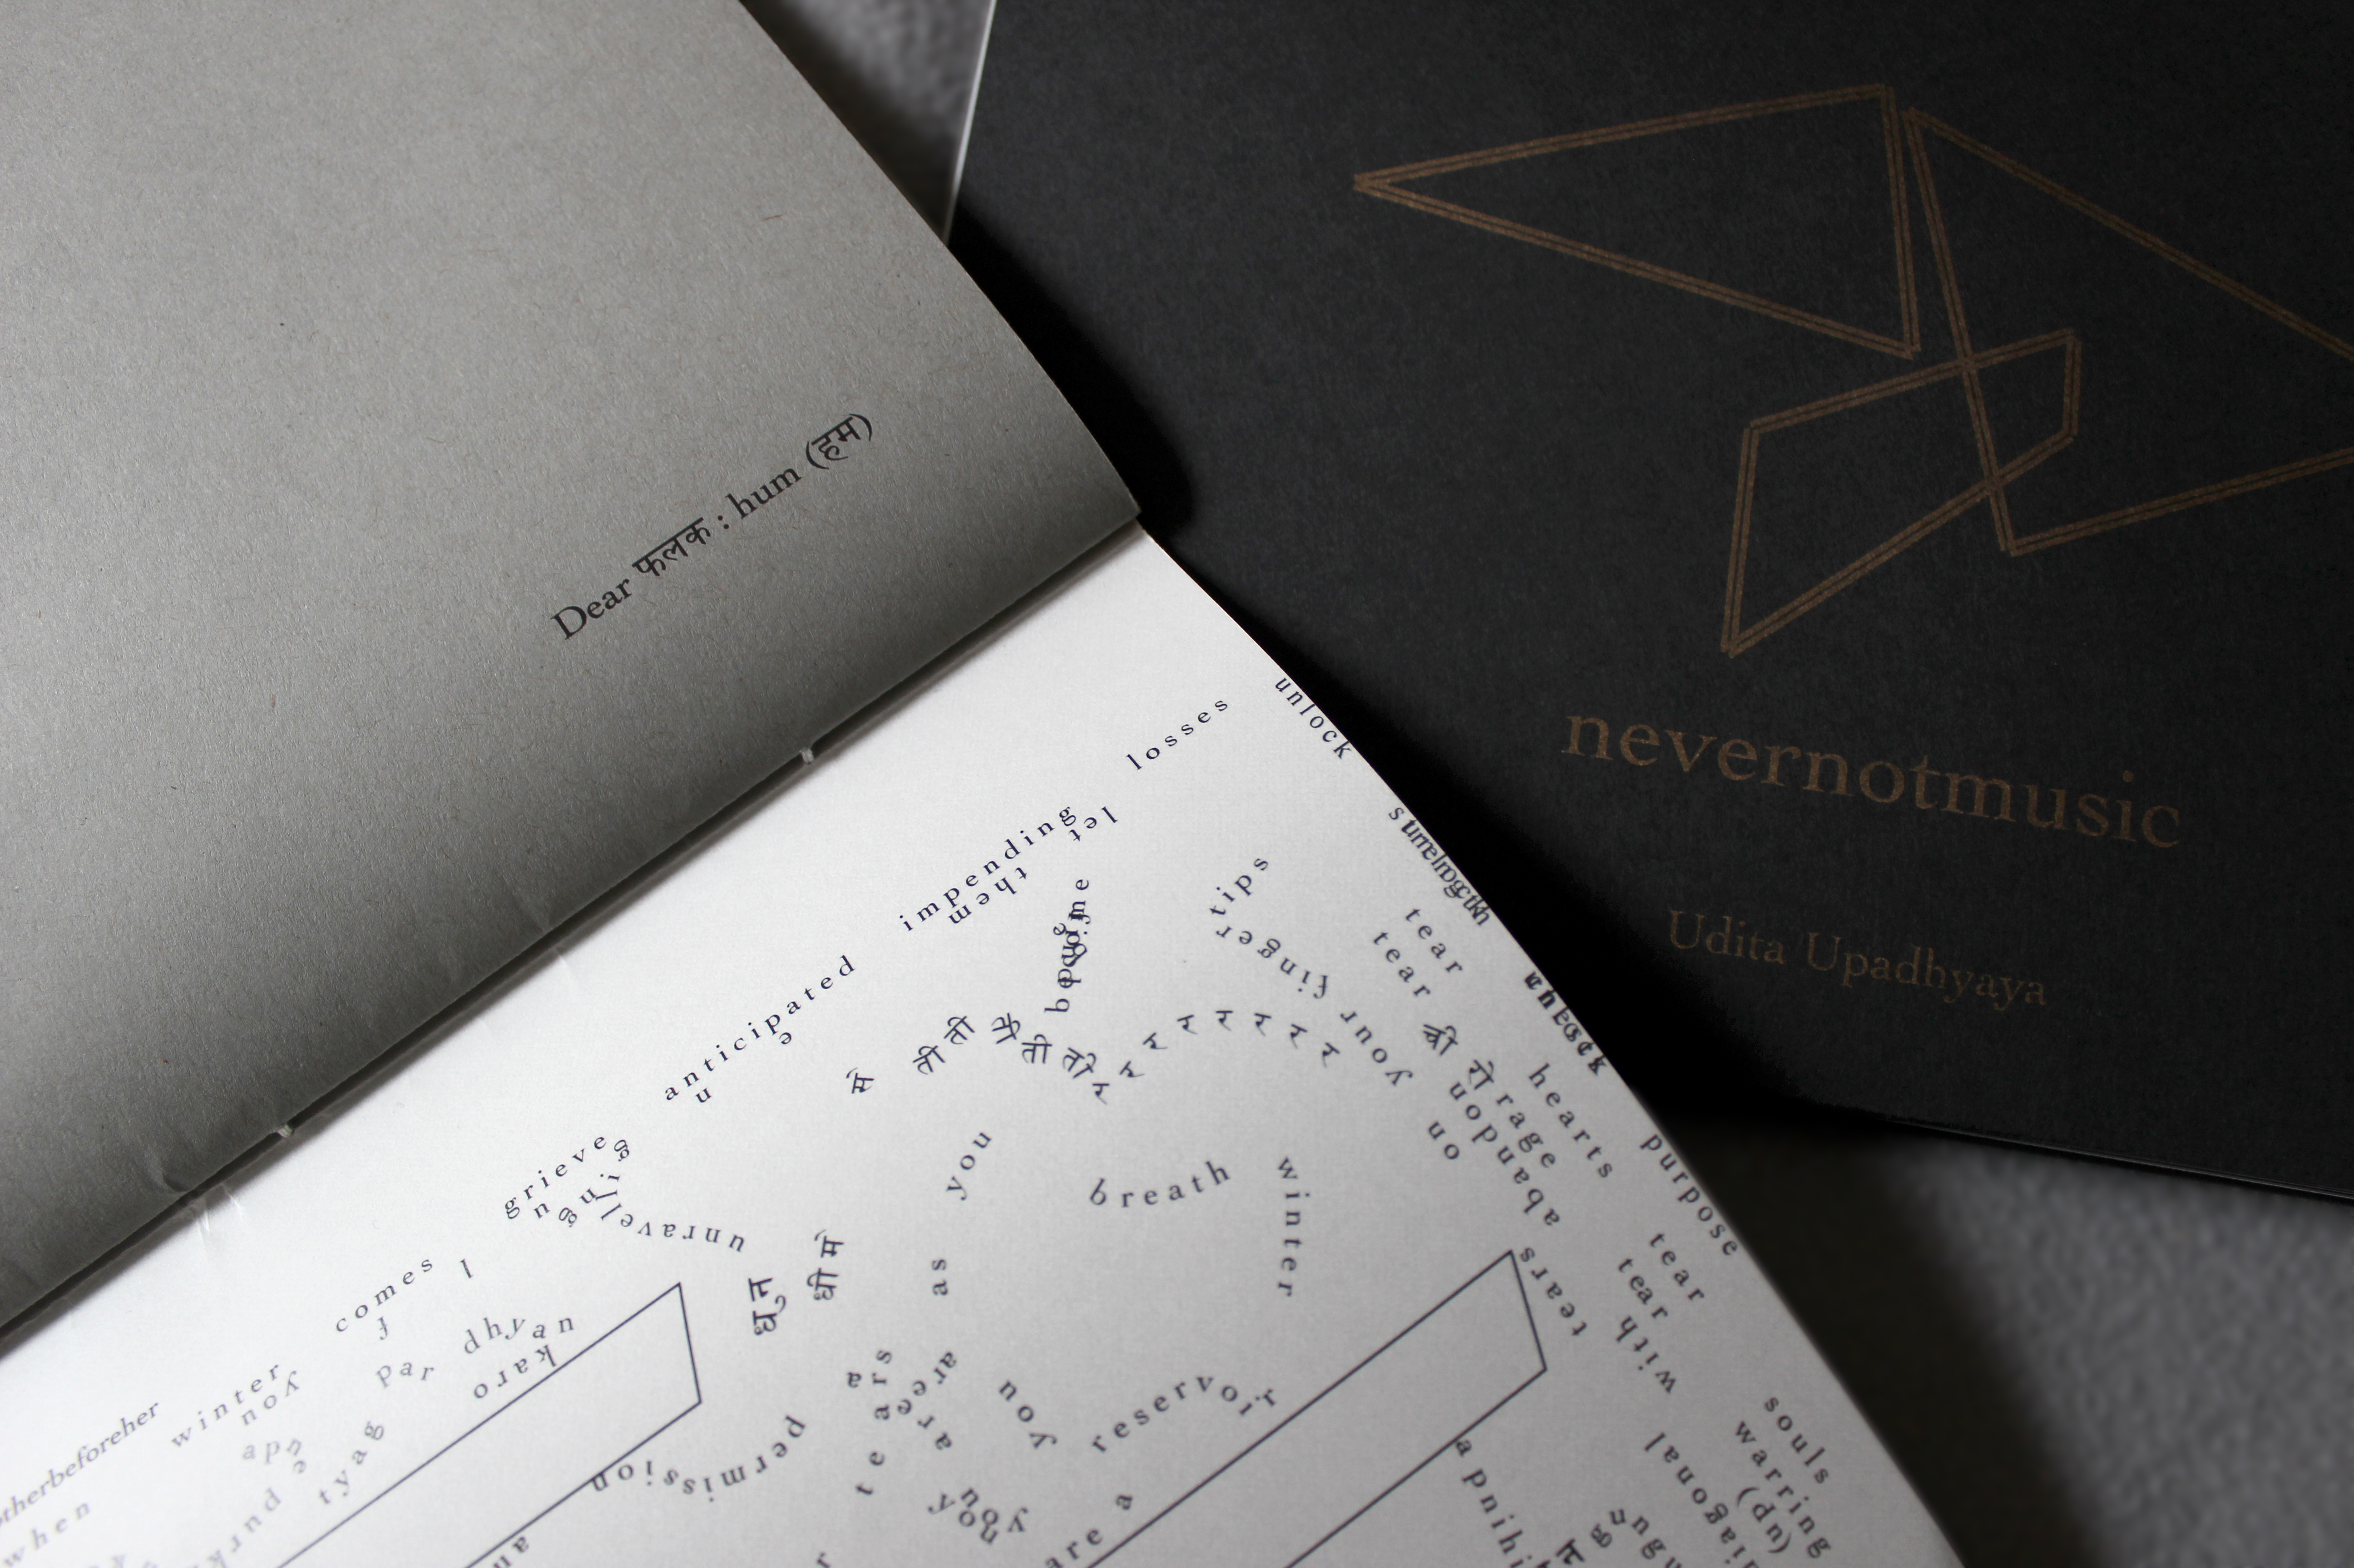 """This image depicts part of a performance score (bound into a thin book) and most of a cover (""""nevernotmusic"""" and """"Udita Upadhyaya"""" in gold text, with thin gold parallel lines forming two triangles and a rhombus, on black paper). On the top page (toward its bottom-right corner), it reads """"Dear फलक : hum (हम)"""" in black ink on grey paper. Across the binding, on the bottom page, are text in English and Hindi and hollow shapes (partially visible; possibly rhombuses), both in black ink against a whitish vellum background. Text appears in different sizes and spatial orientations (e.g., right-side up, upside-down, diagonal, vertical, and organic shapes), with some words/phrases expanded in space, condensed, or intersecting with other text. Along one side of the vellum page, text is flush with the edge; along the binding side, there is a white margin between the line of text and the binding."""